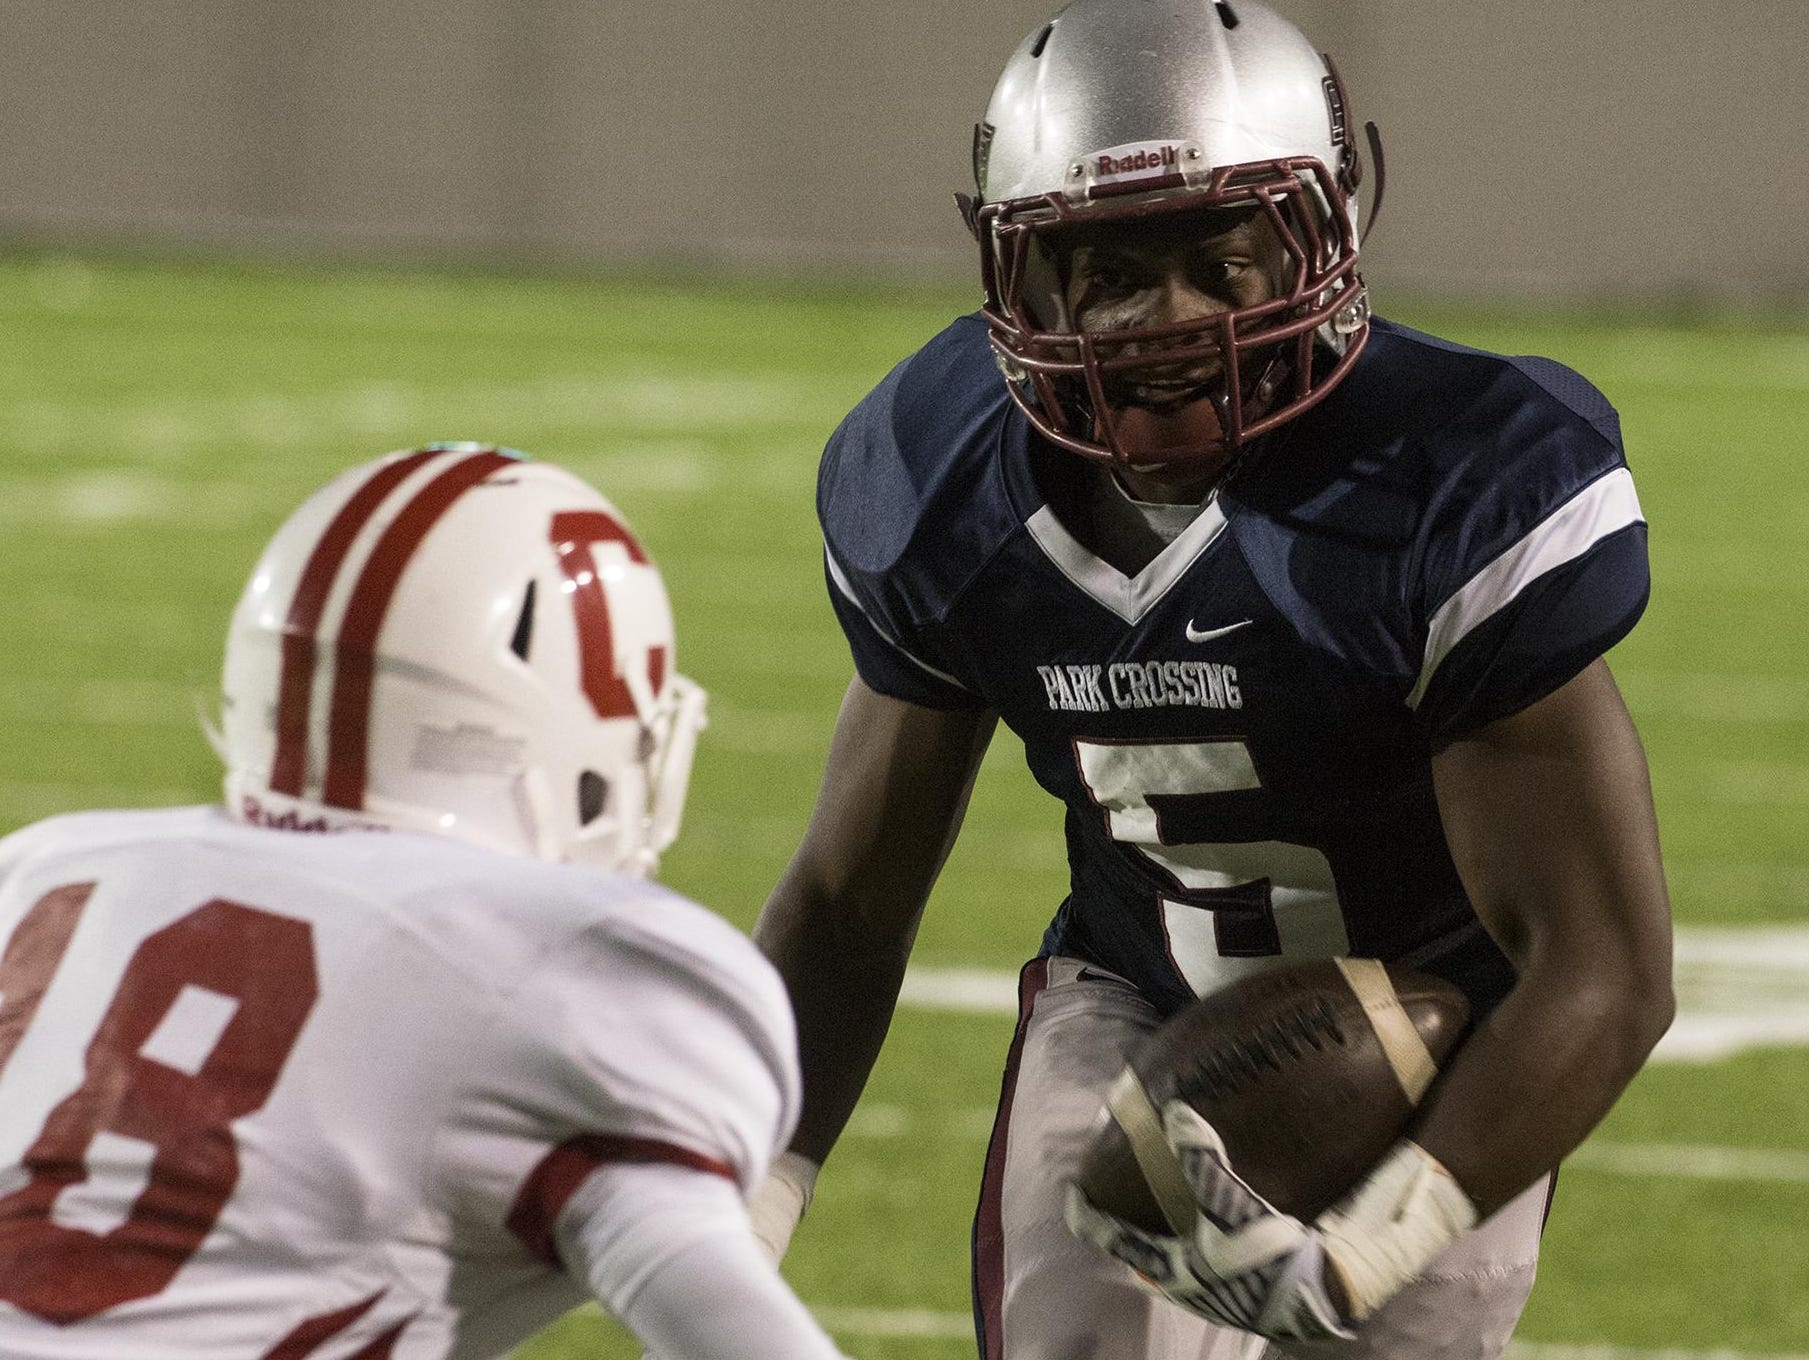 Park Crossing's Steven Hodges (#5) looks for room to run. Thunderbirds take on the Carroll Eagles in Park Crossing's homecoming game Friday, Sept. 18, 2015.